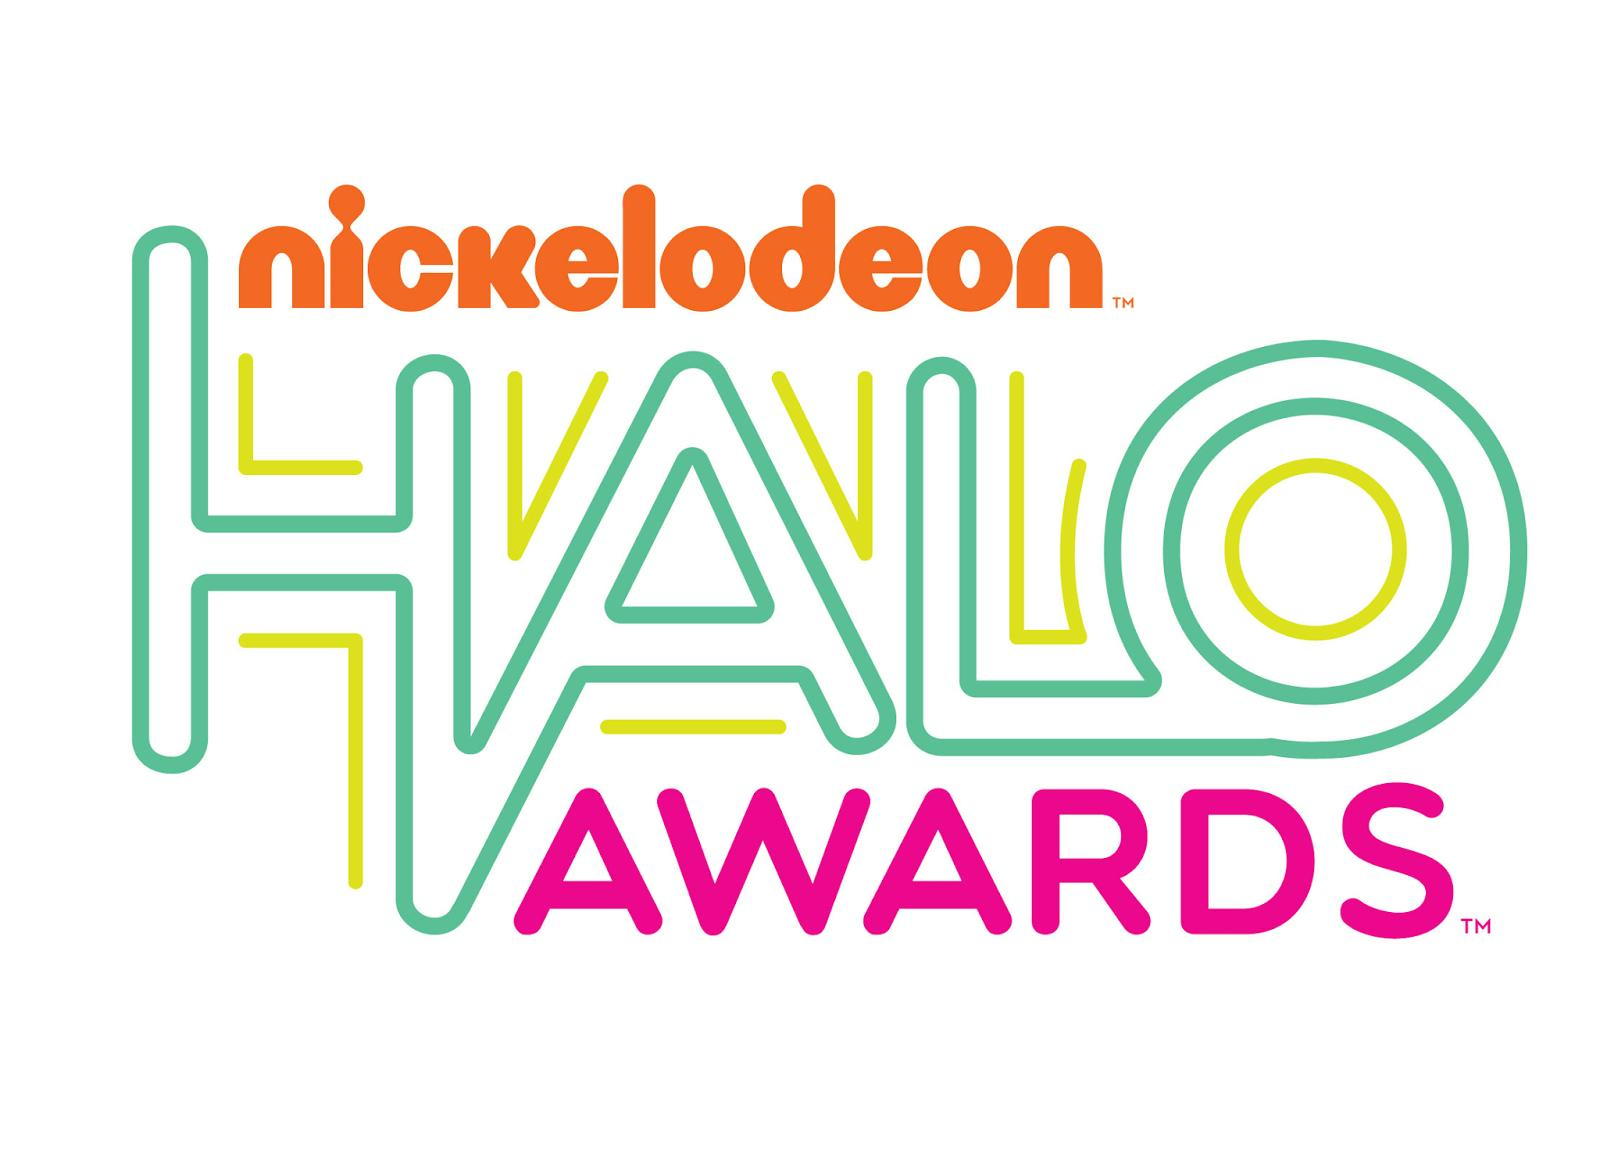 Nickelodeon HALO Awards 2014 (2014) - IMDb